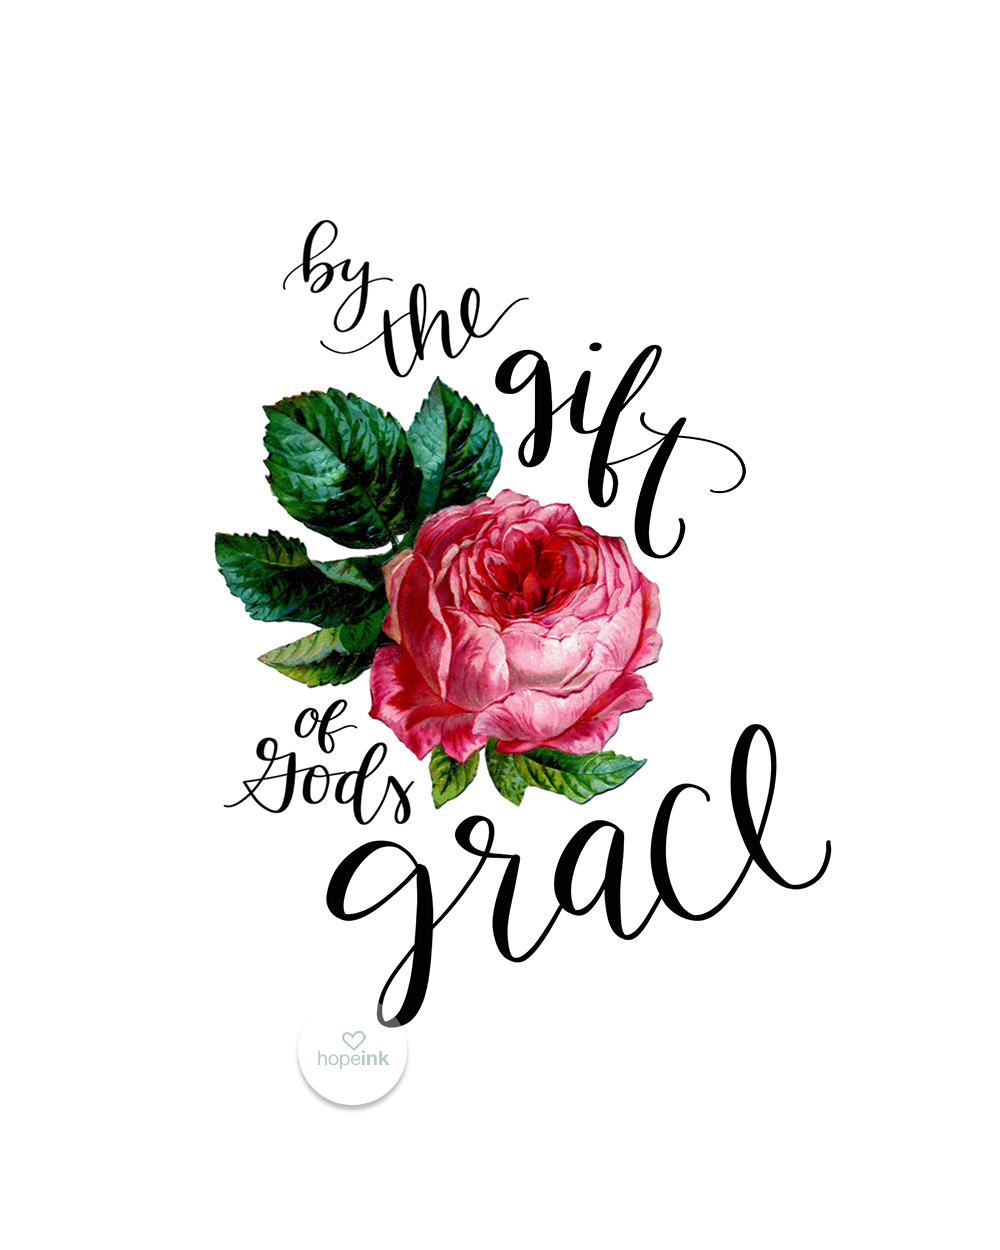 The Gift of God's Grace | Handlettered Rose | Hope Ink.jpg